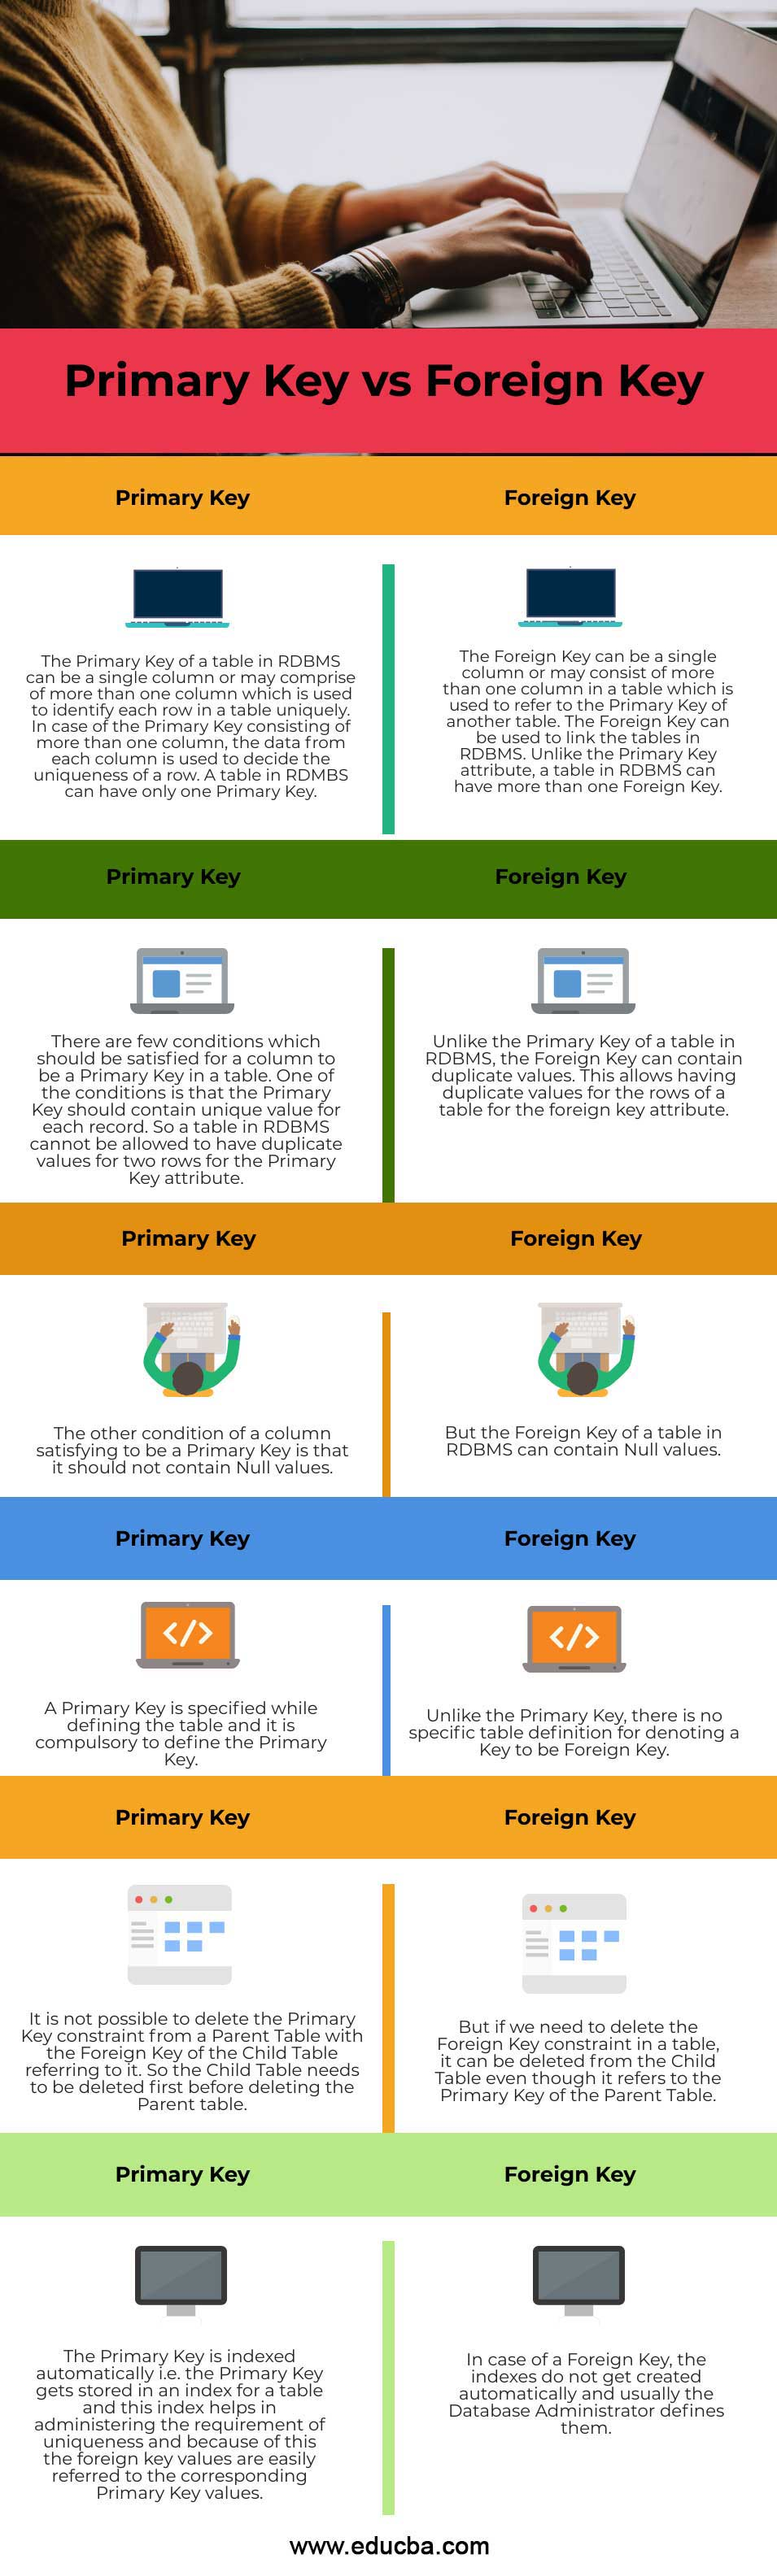 Primary-Key-vs-Foreign-Key-info